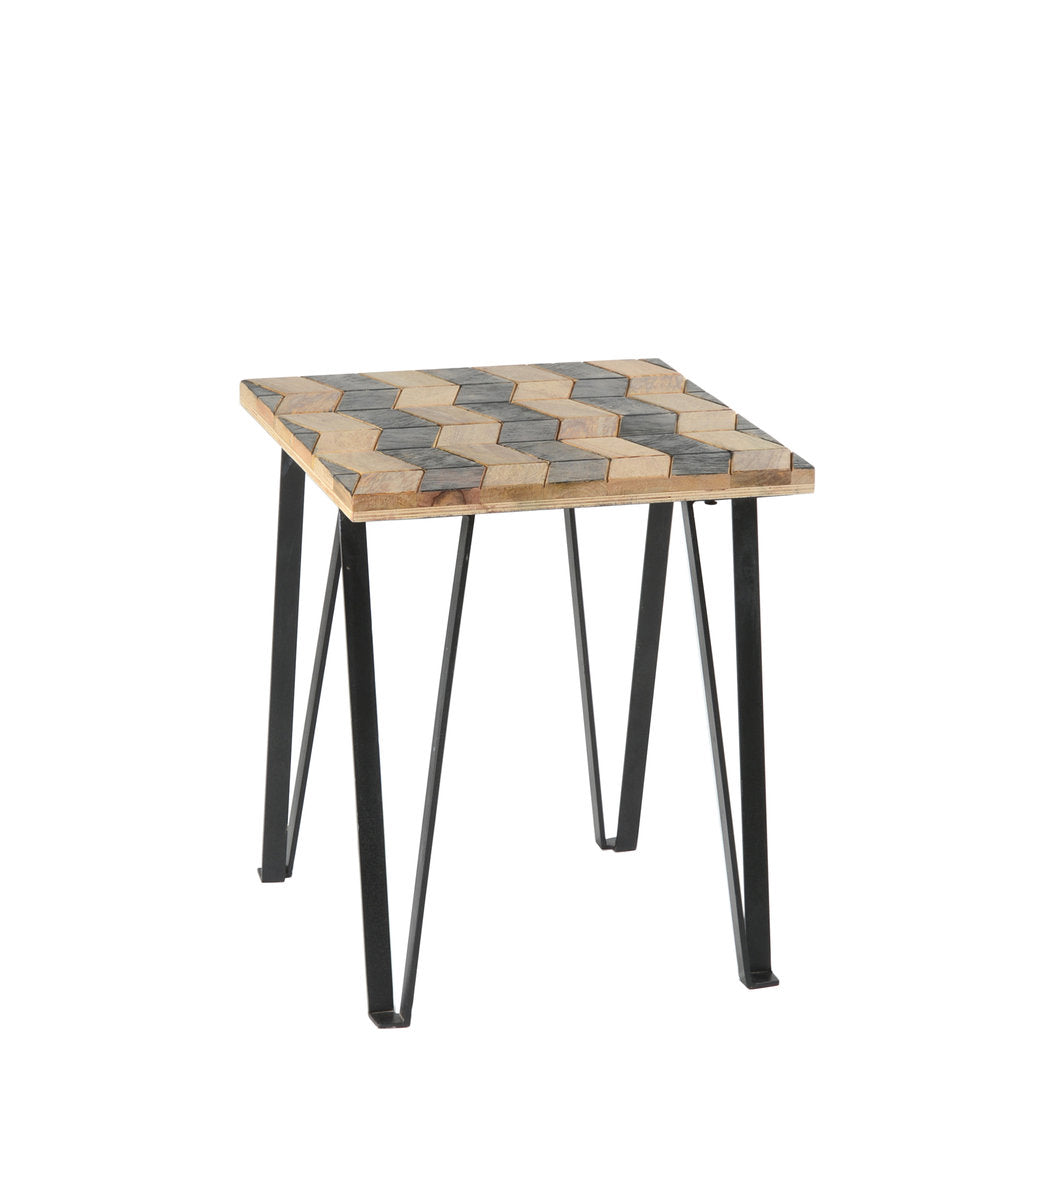 MATRIX PARQUET END TABLE - SHEESHAM ROSEWOOD